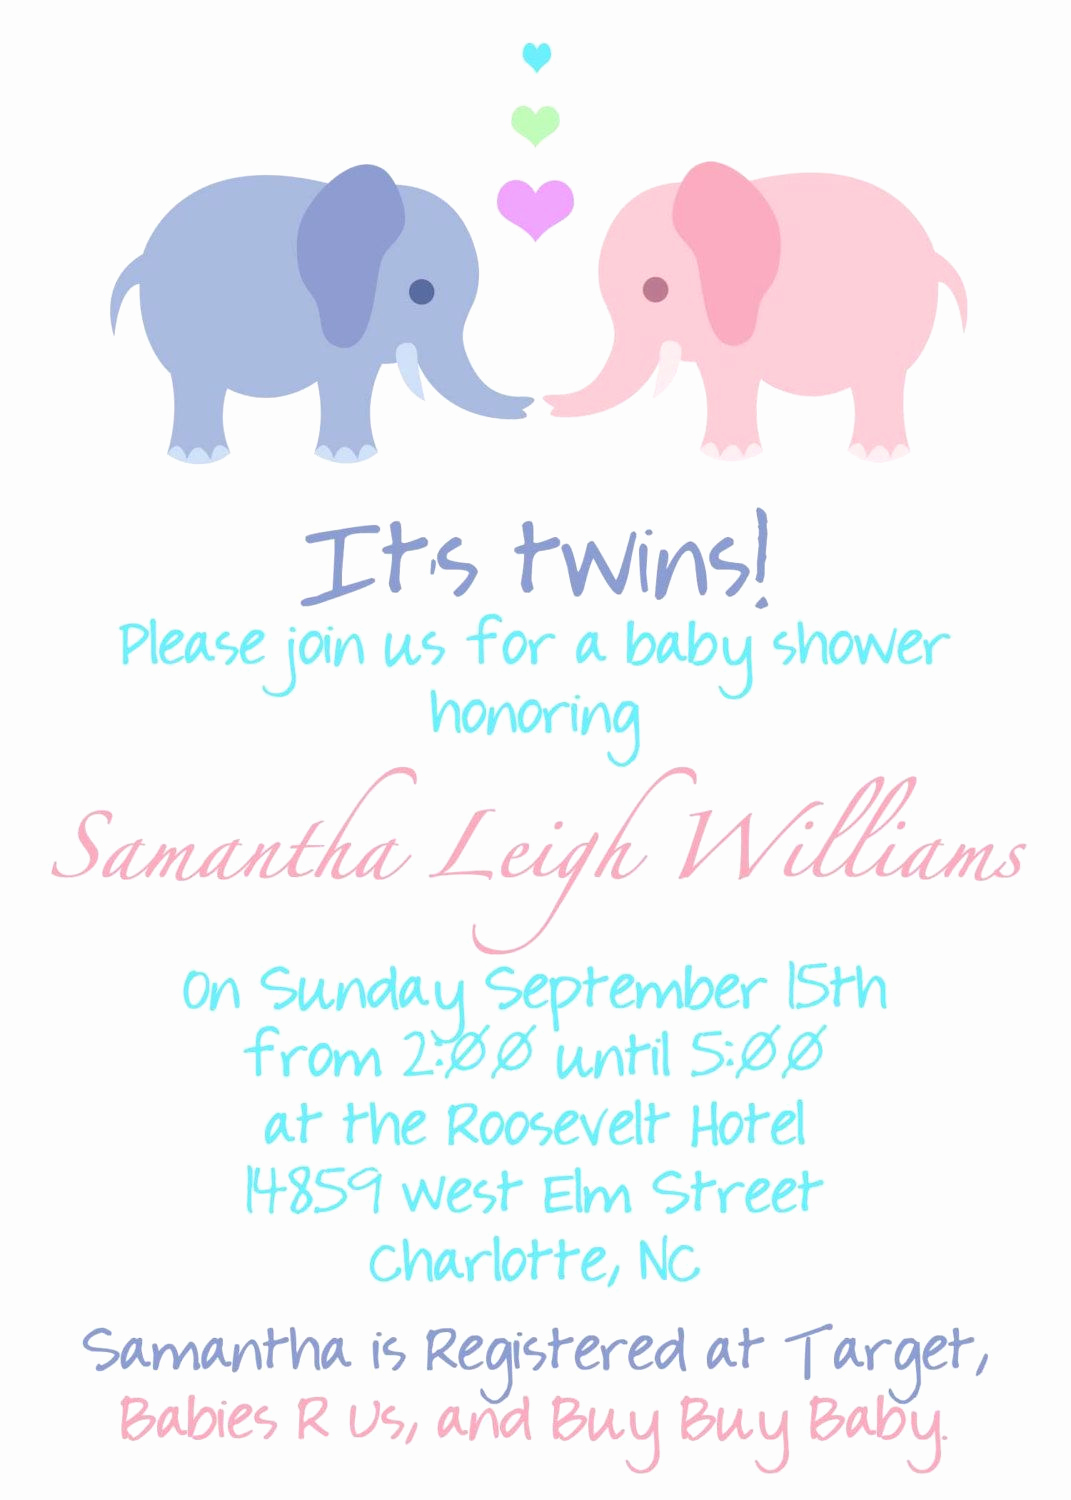 Baby Shower Invitation Example Elegant Twin Pregnancy Announcement Wording